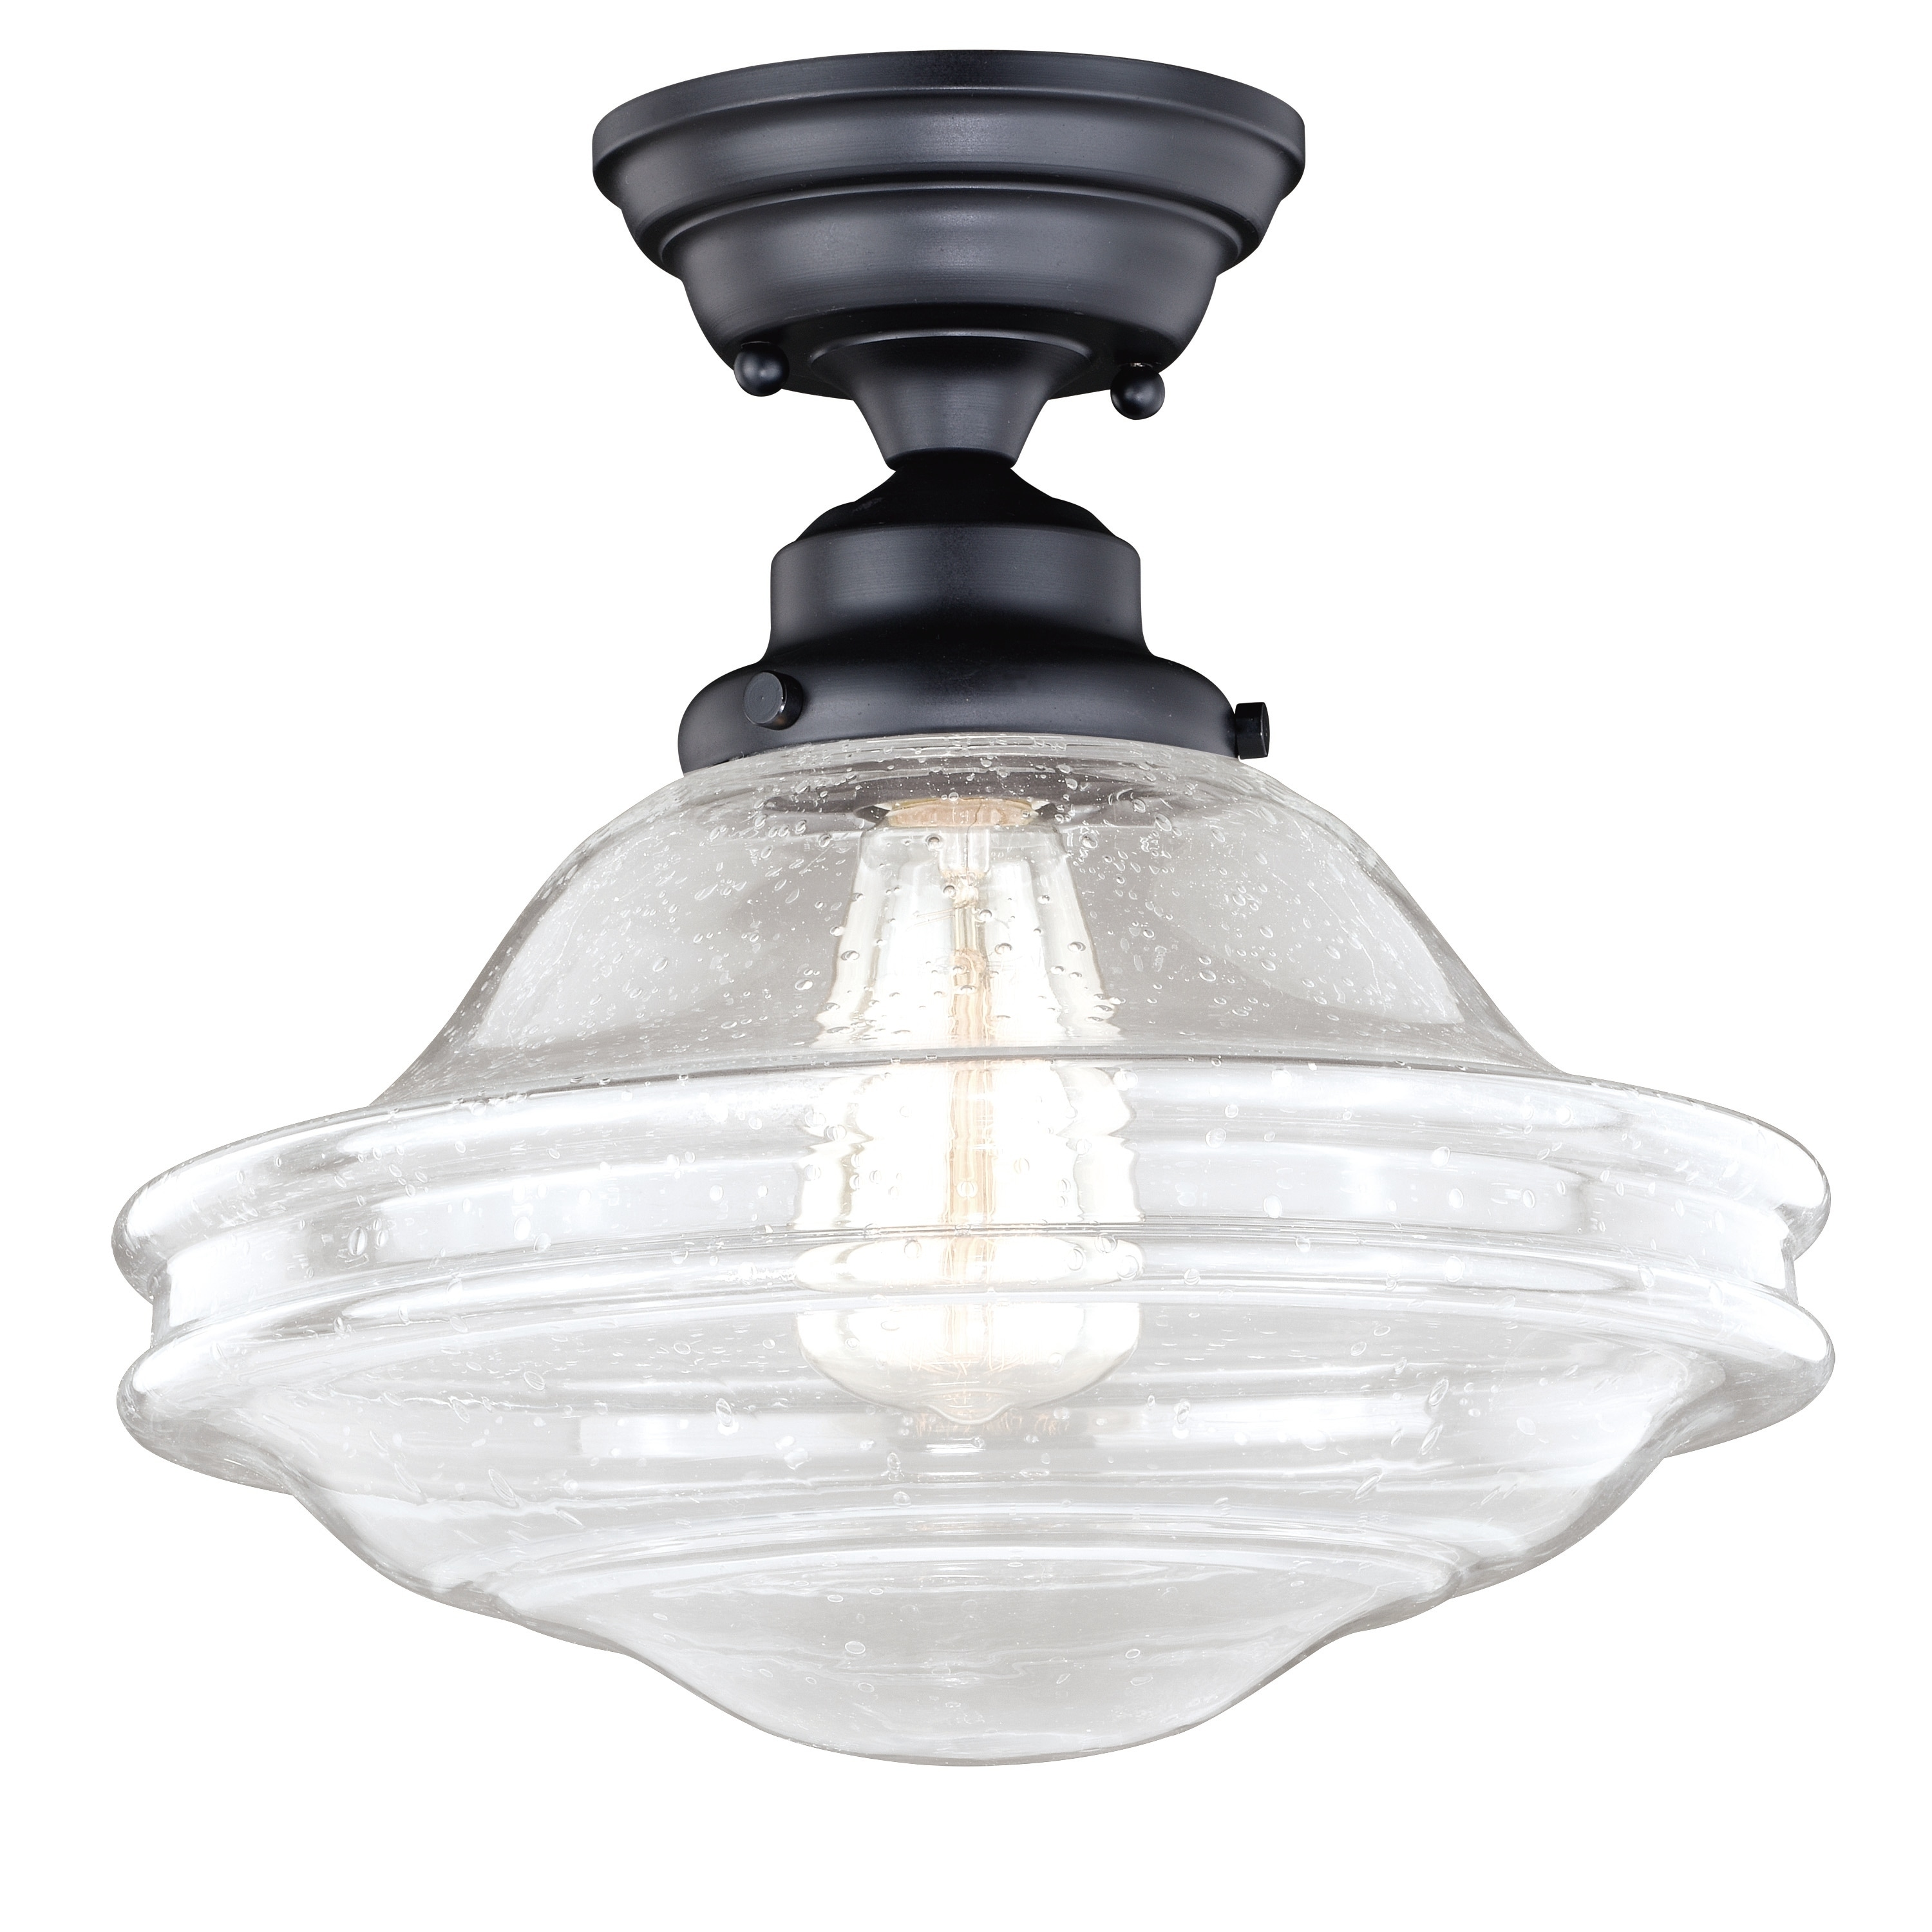 Huntley Oil Rubbed Bronze Farmhouse Semi Flush Mount Ceiling Light With Clear Glass 12 In W X 11 75 In H X 12 In D Overstock 20906782